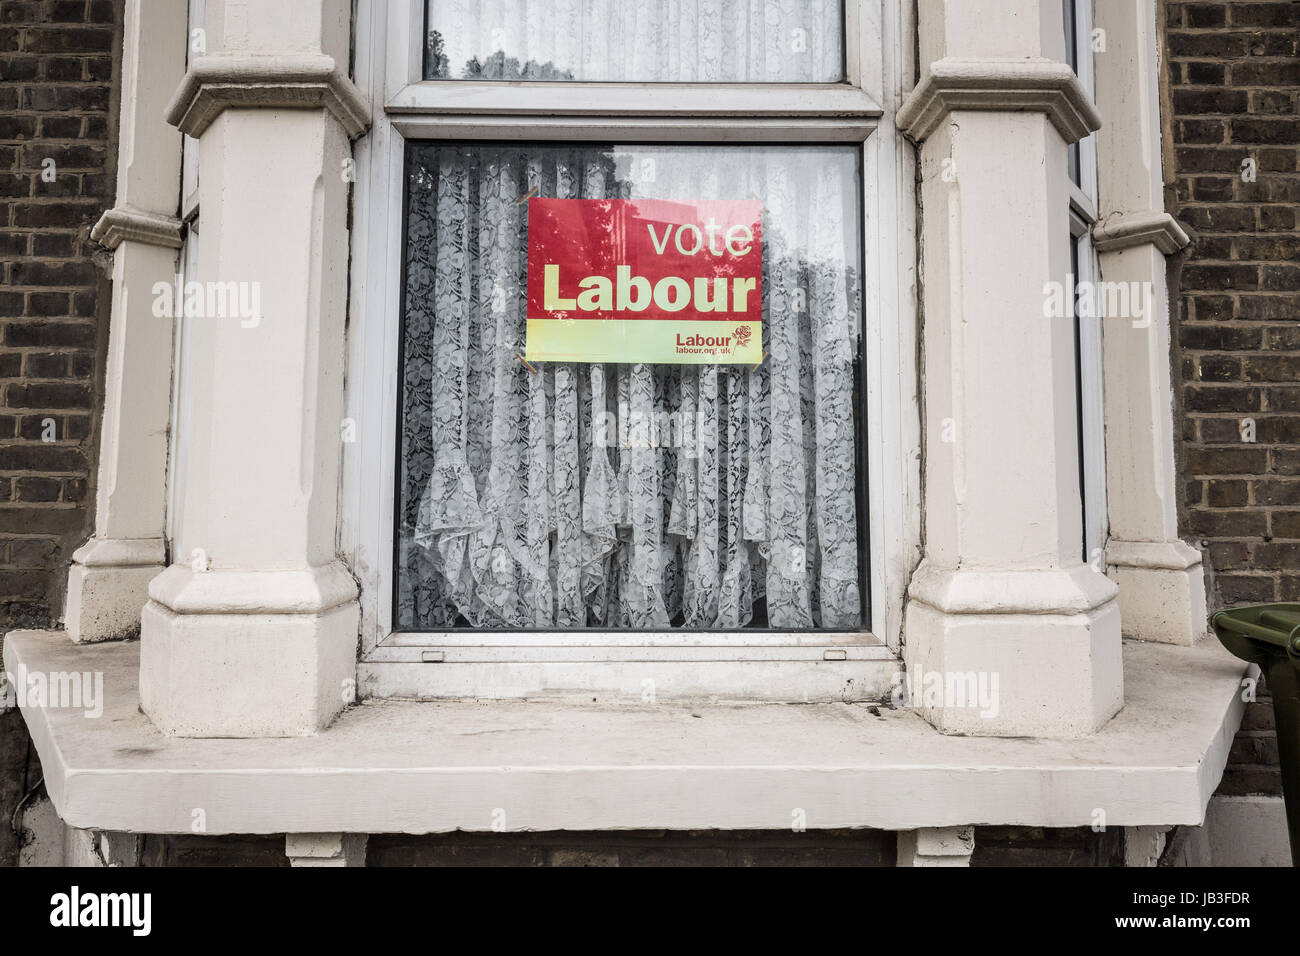 Vote Labour election placard seen in the window of a house in south east London, UK. - Stock Image